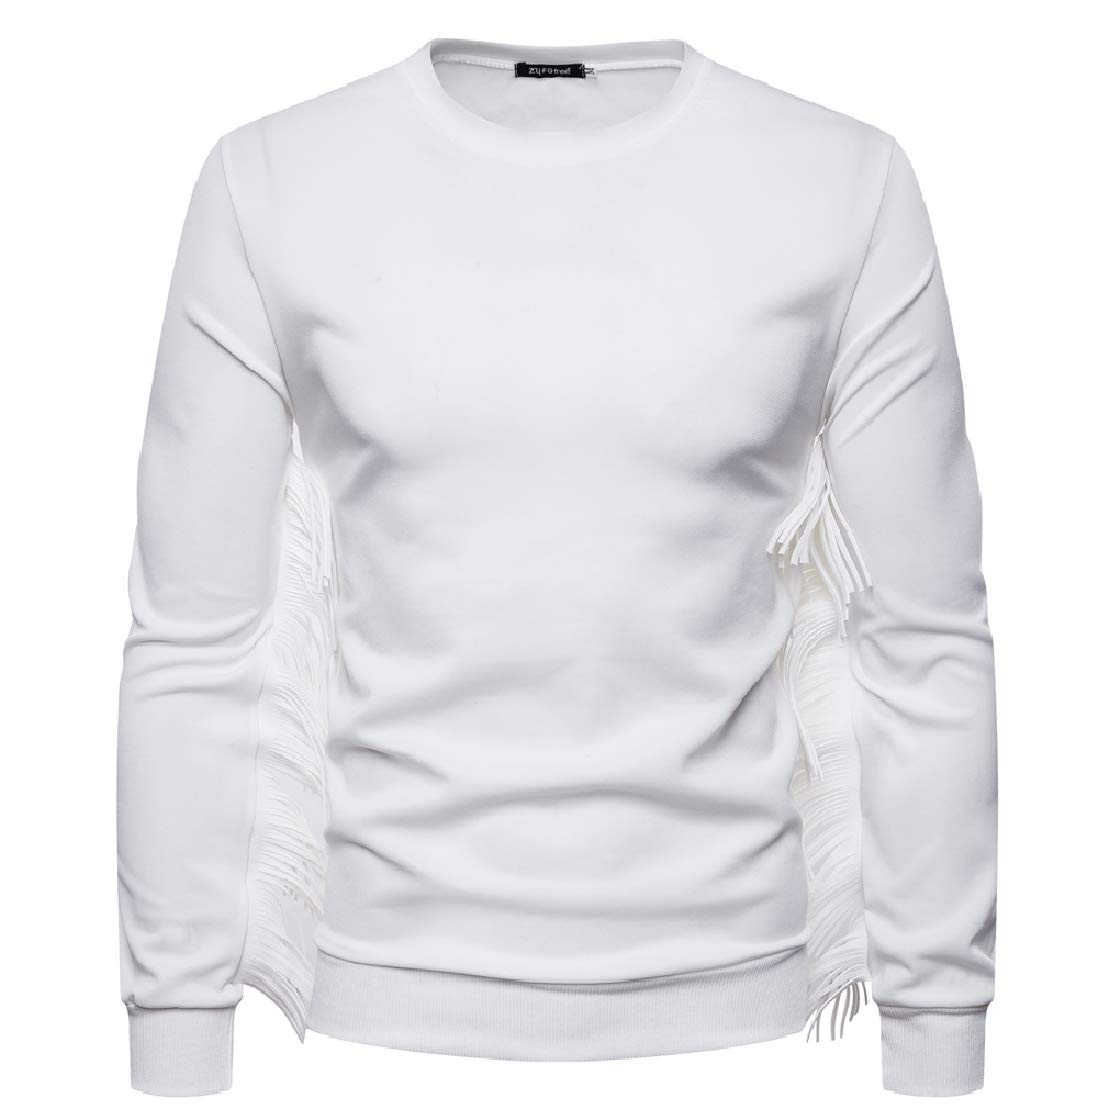 YUNY Mens Tassel Round Neck Stylish Fitted Solid Pullover Sweatshirt White M